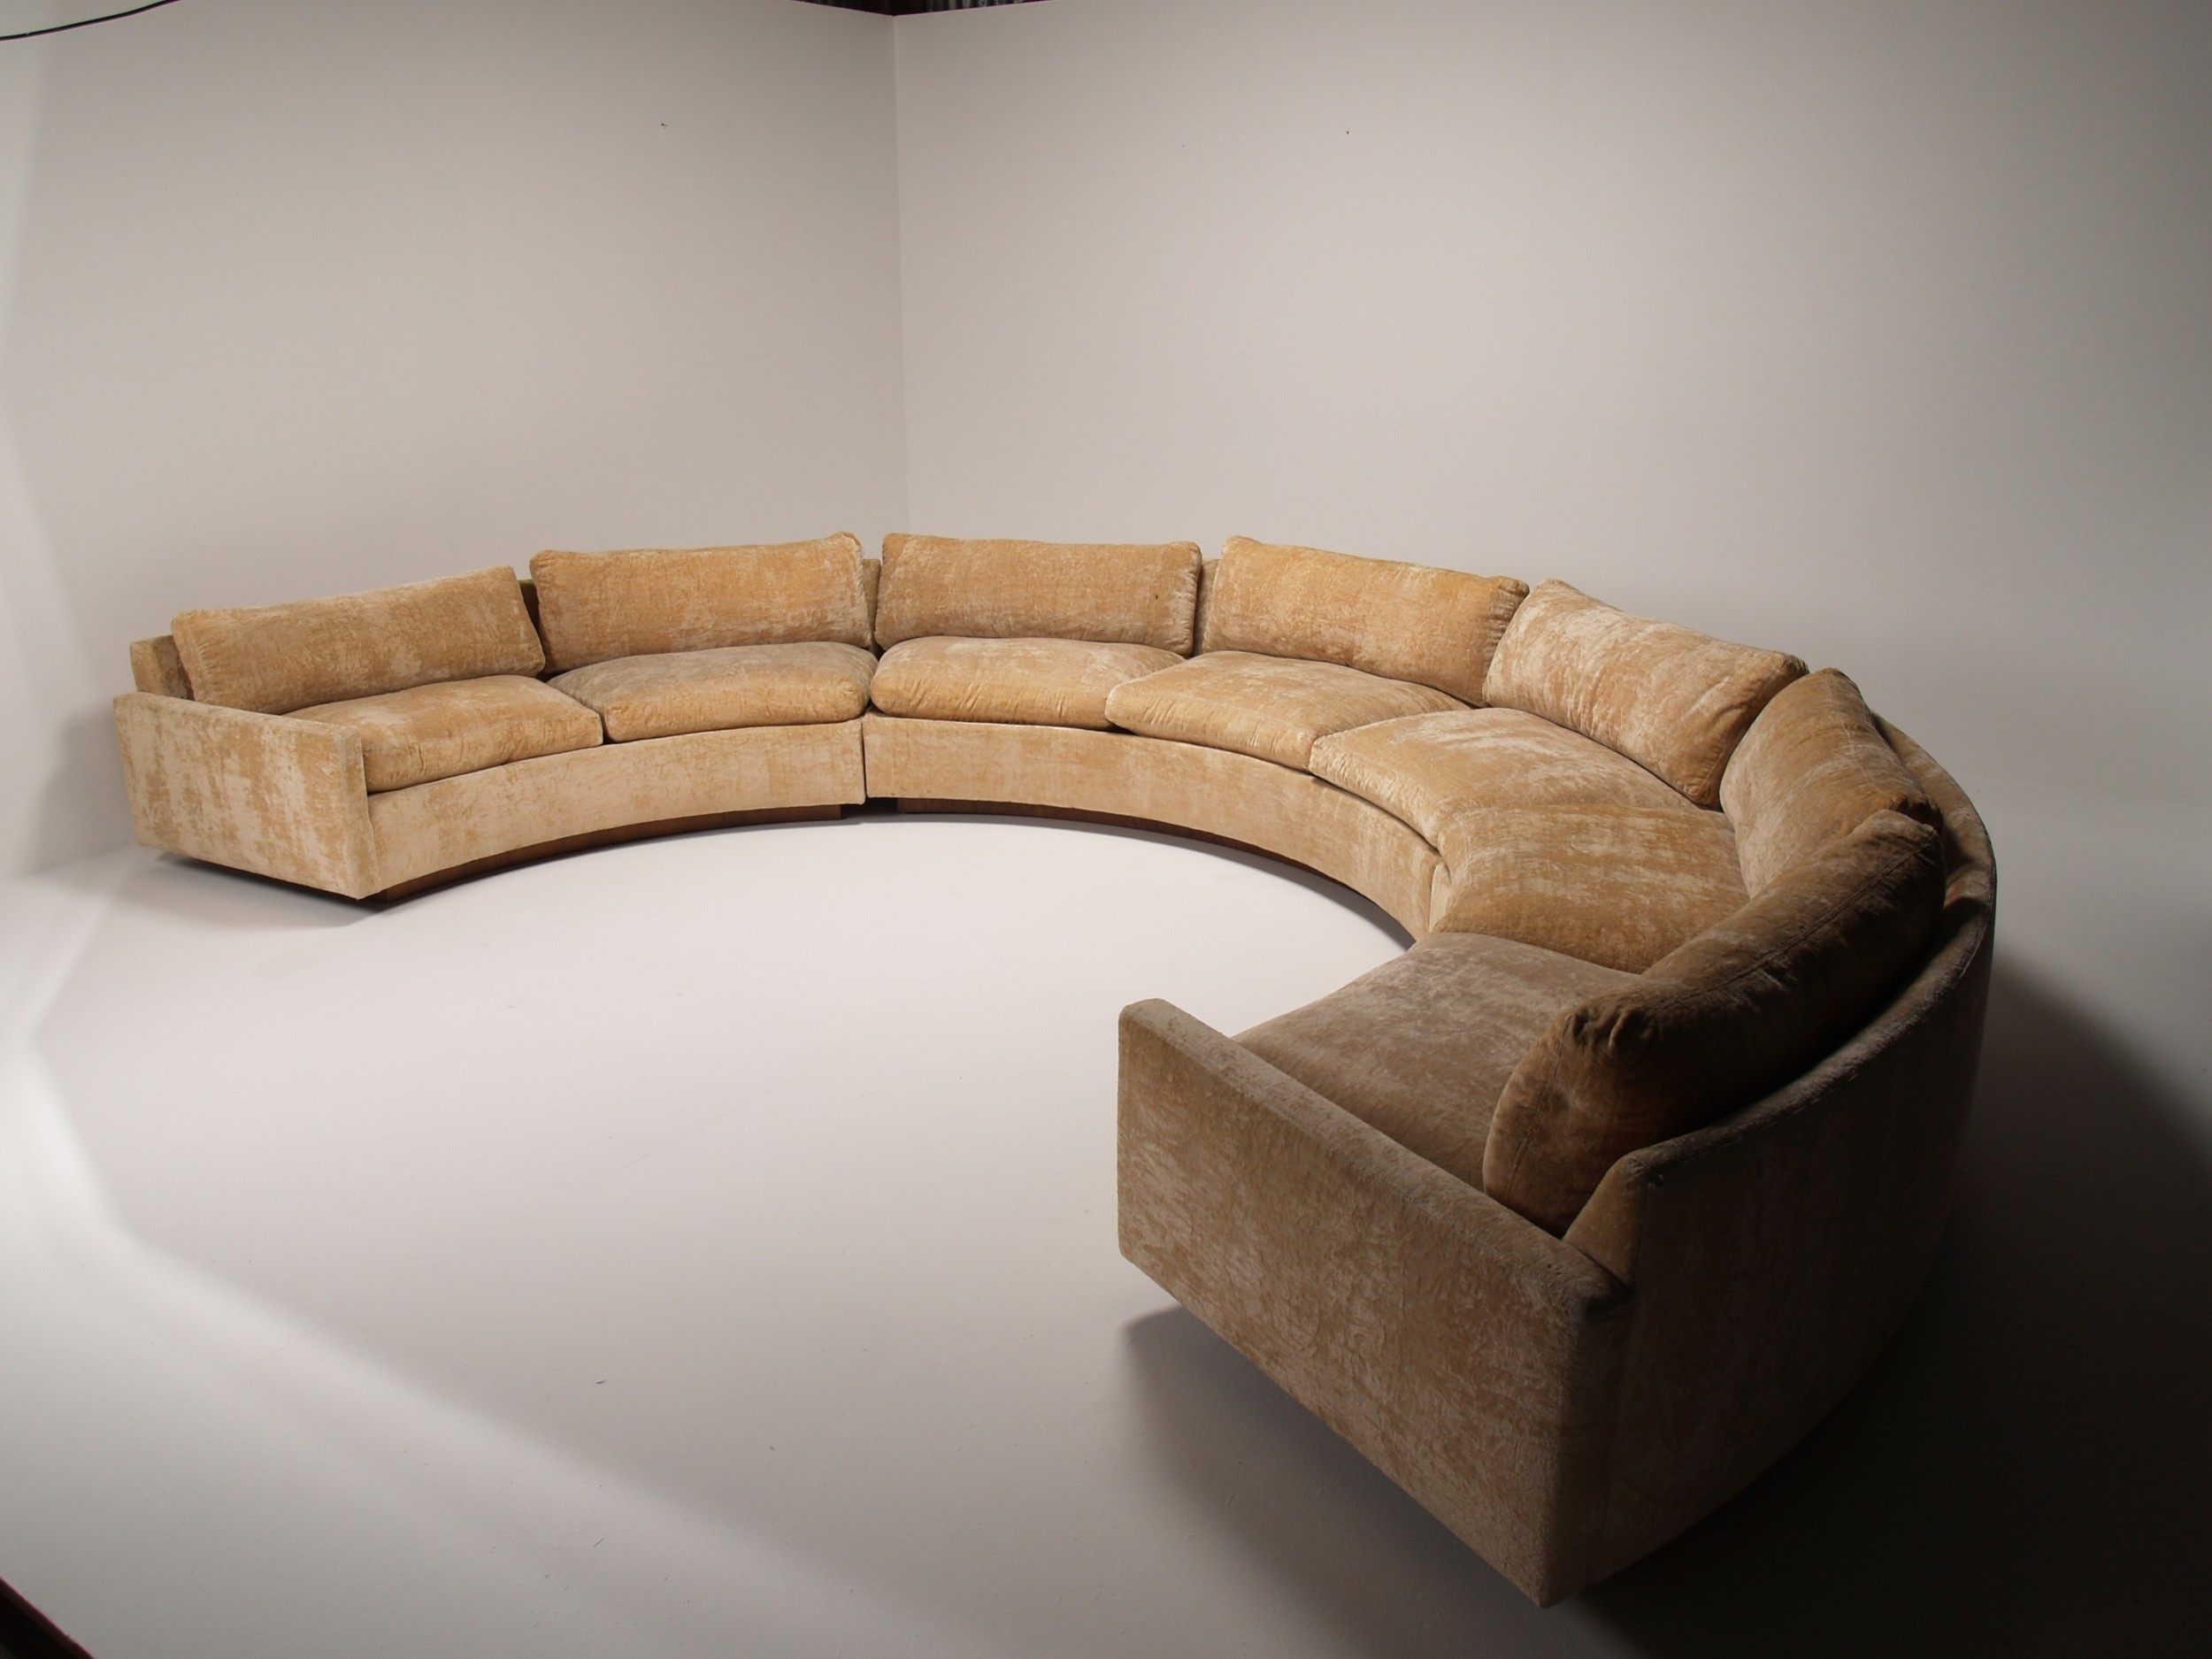 Modern Curved Sofas With Couches Rounded Sectional Leather For Sale With Regard To Rounded Sofas (Image 7 of 10)